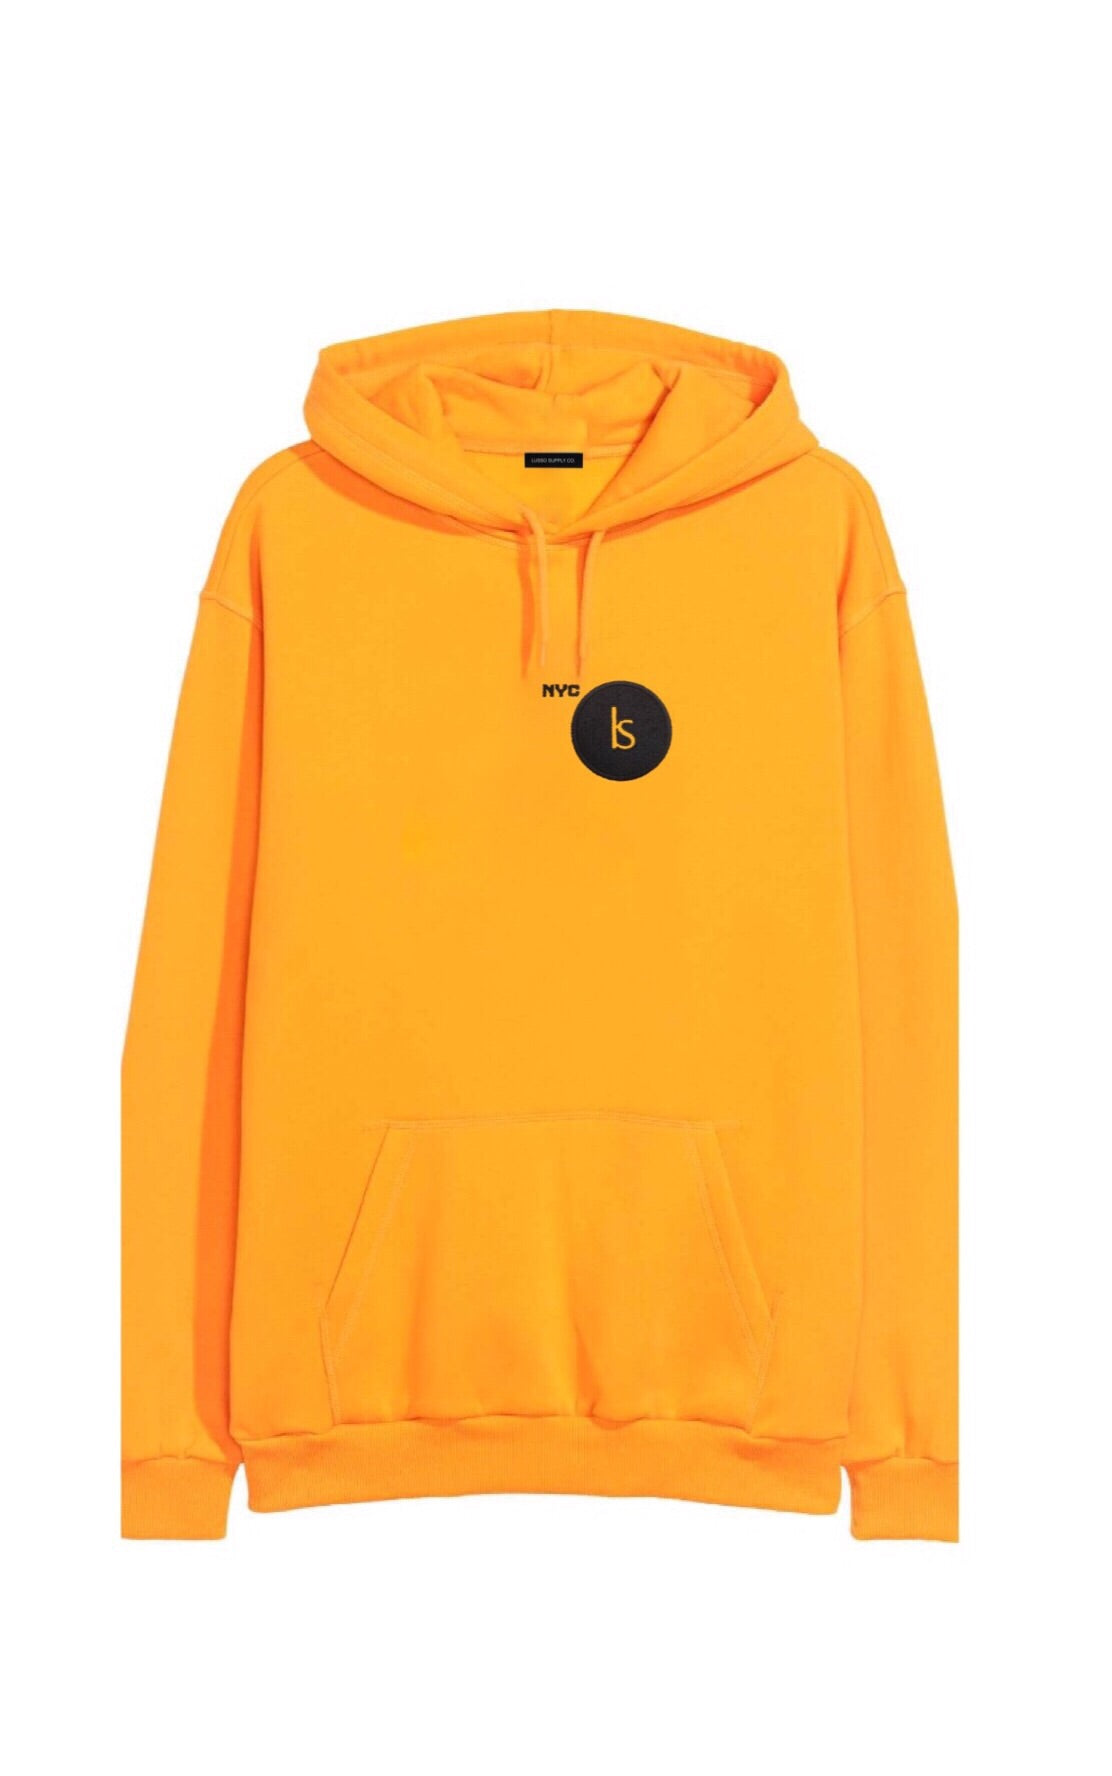 NY5 Byway Hoodie (NYC TAXICAB YELLOW) Limited Edition